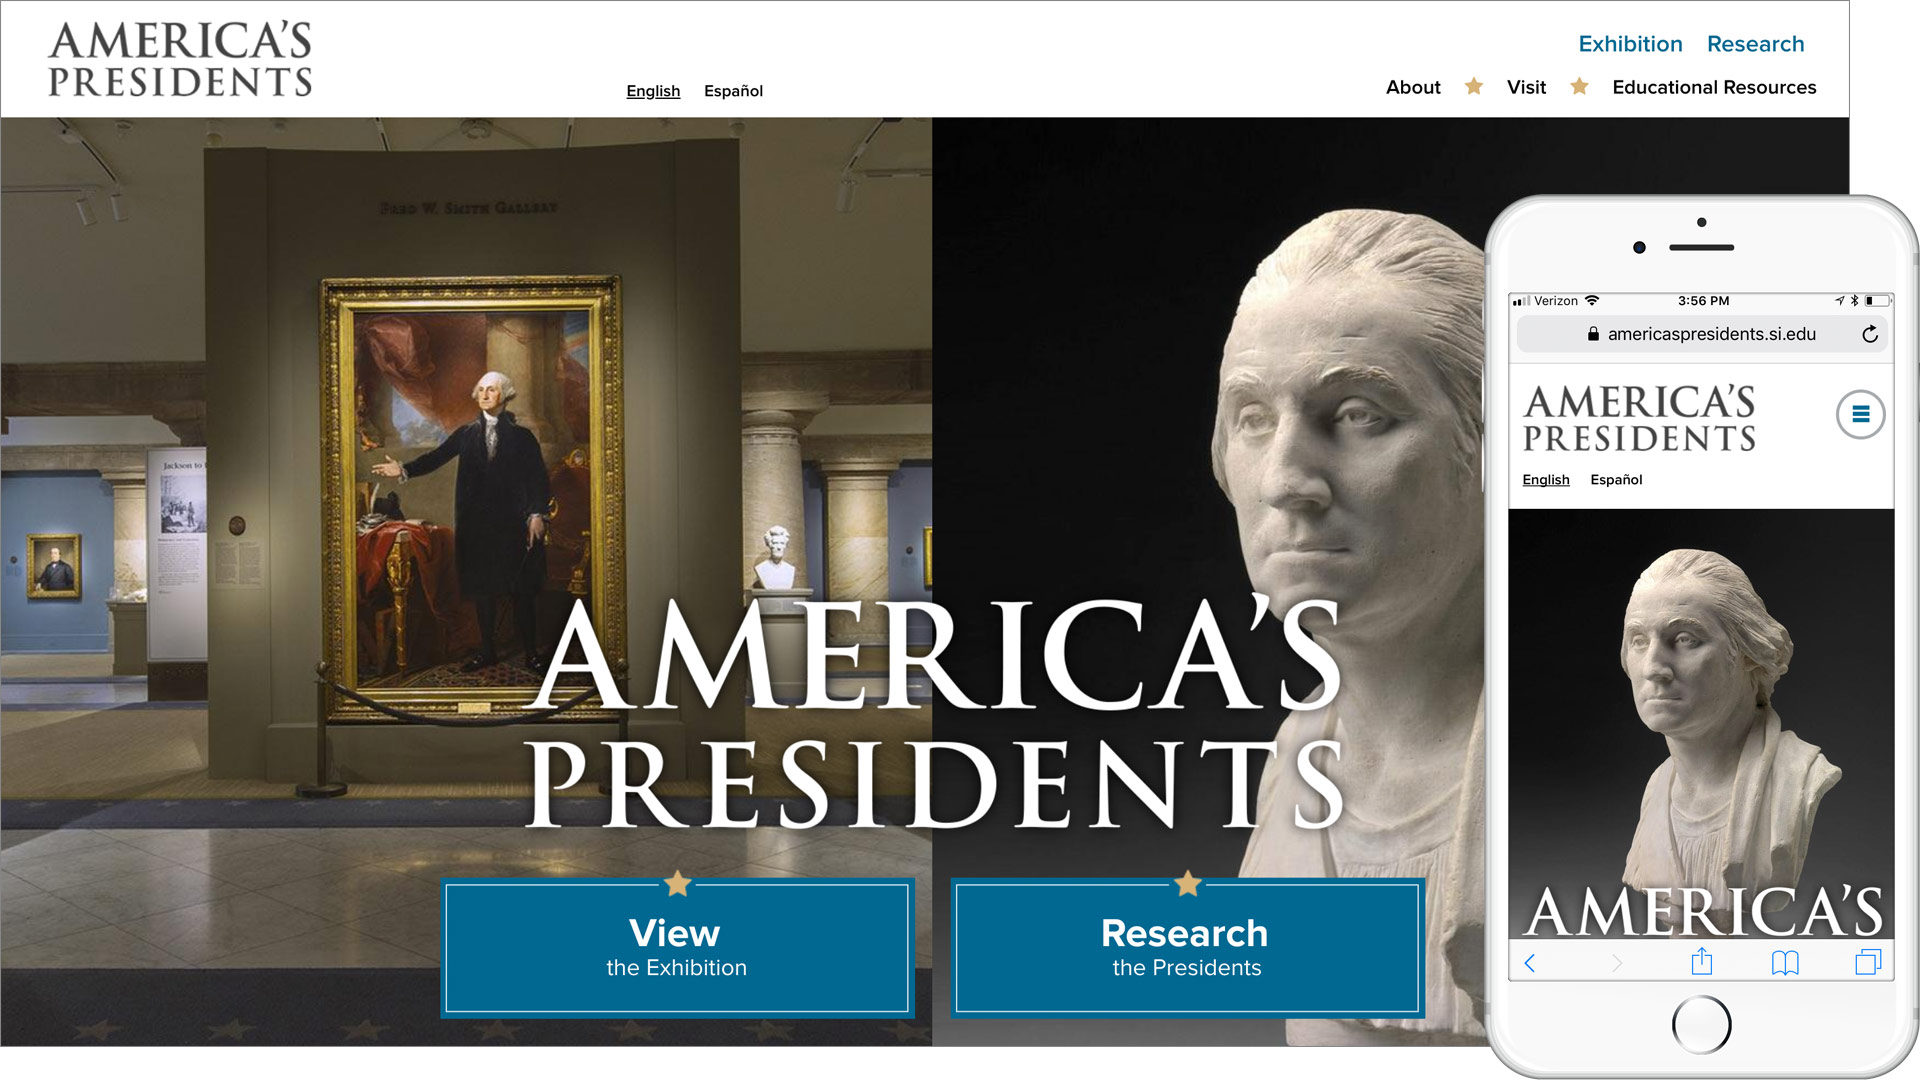 Desktop and mobile versions of the America's Presidents site